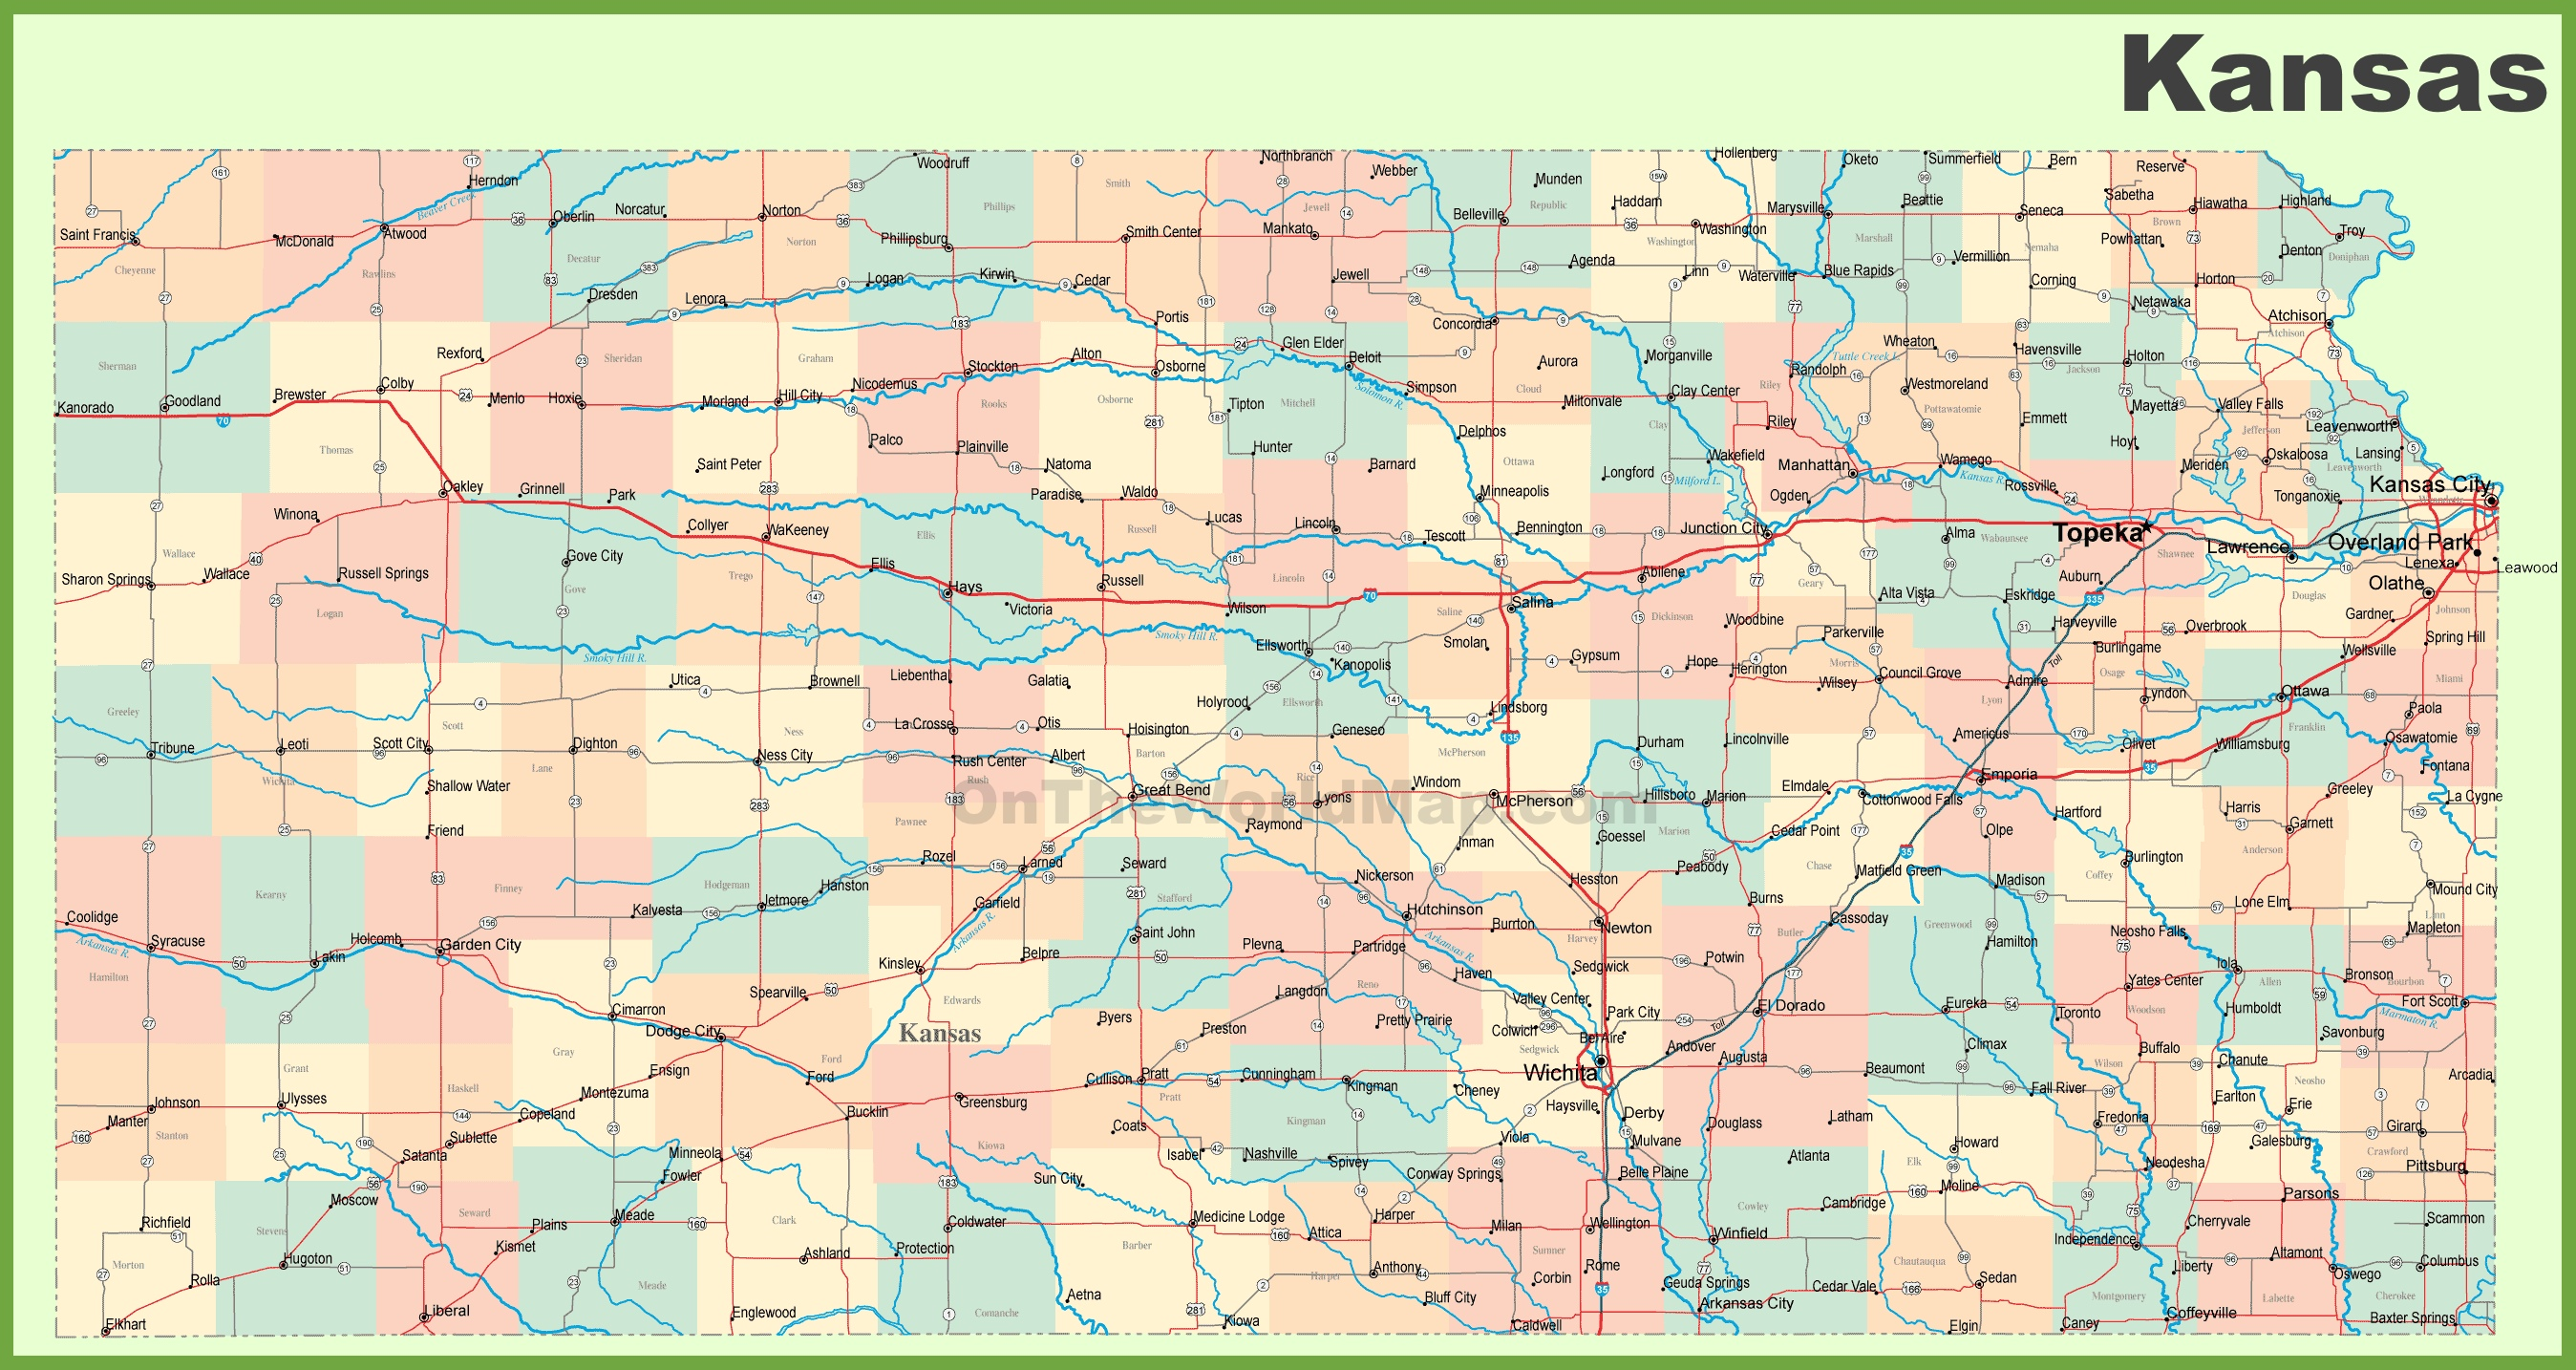 Kansas State Maps USA Maps of Kansas KS